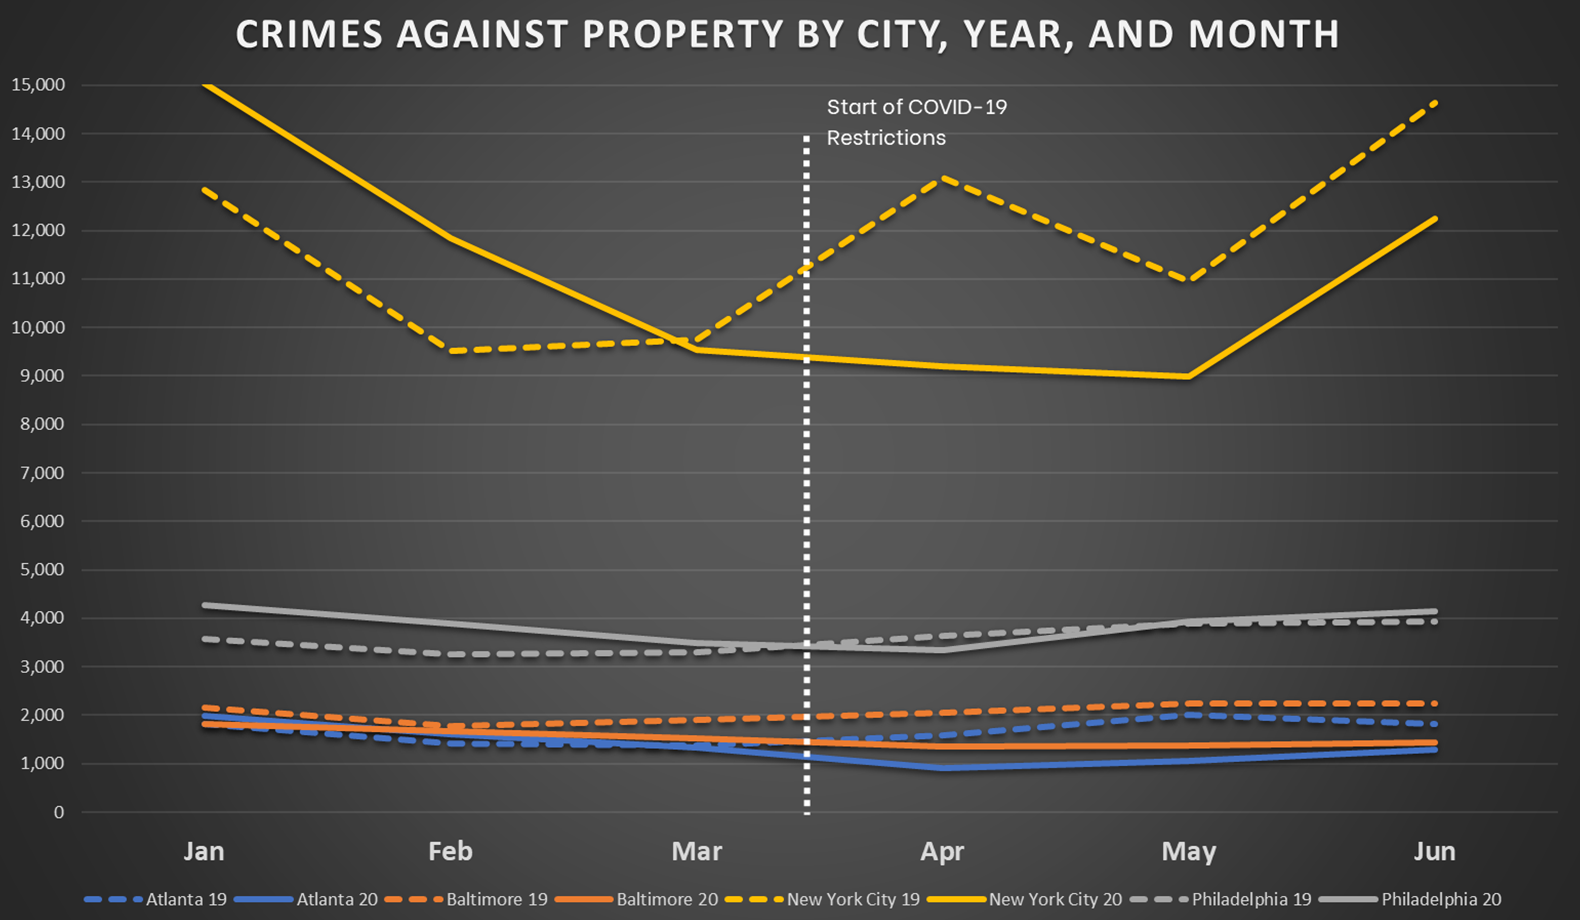 Crimes Against Persons by City, Year, and Month for Eastern Cities